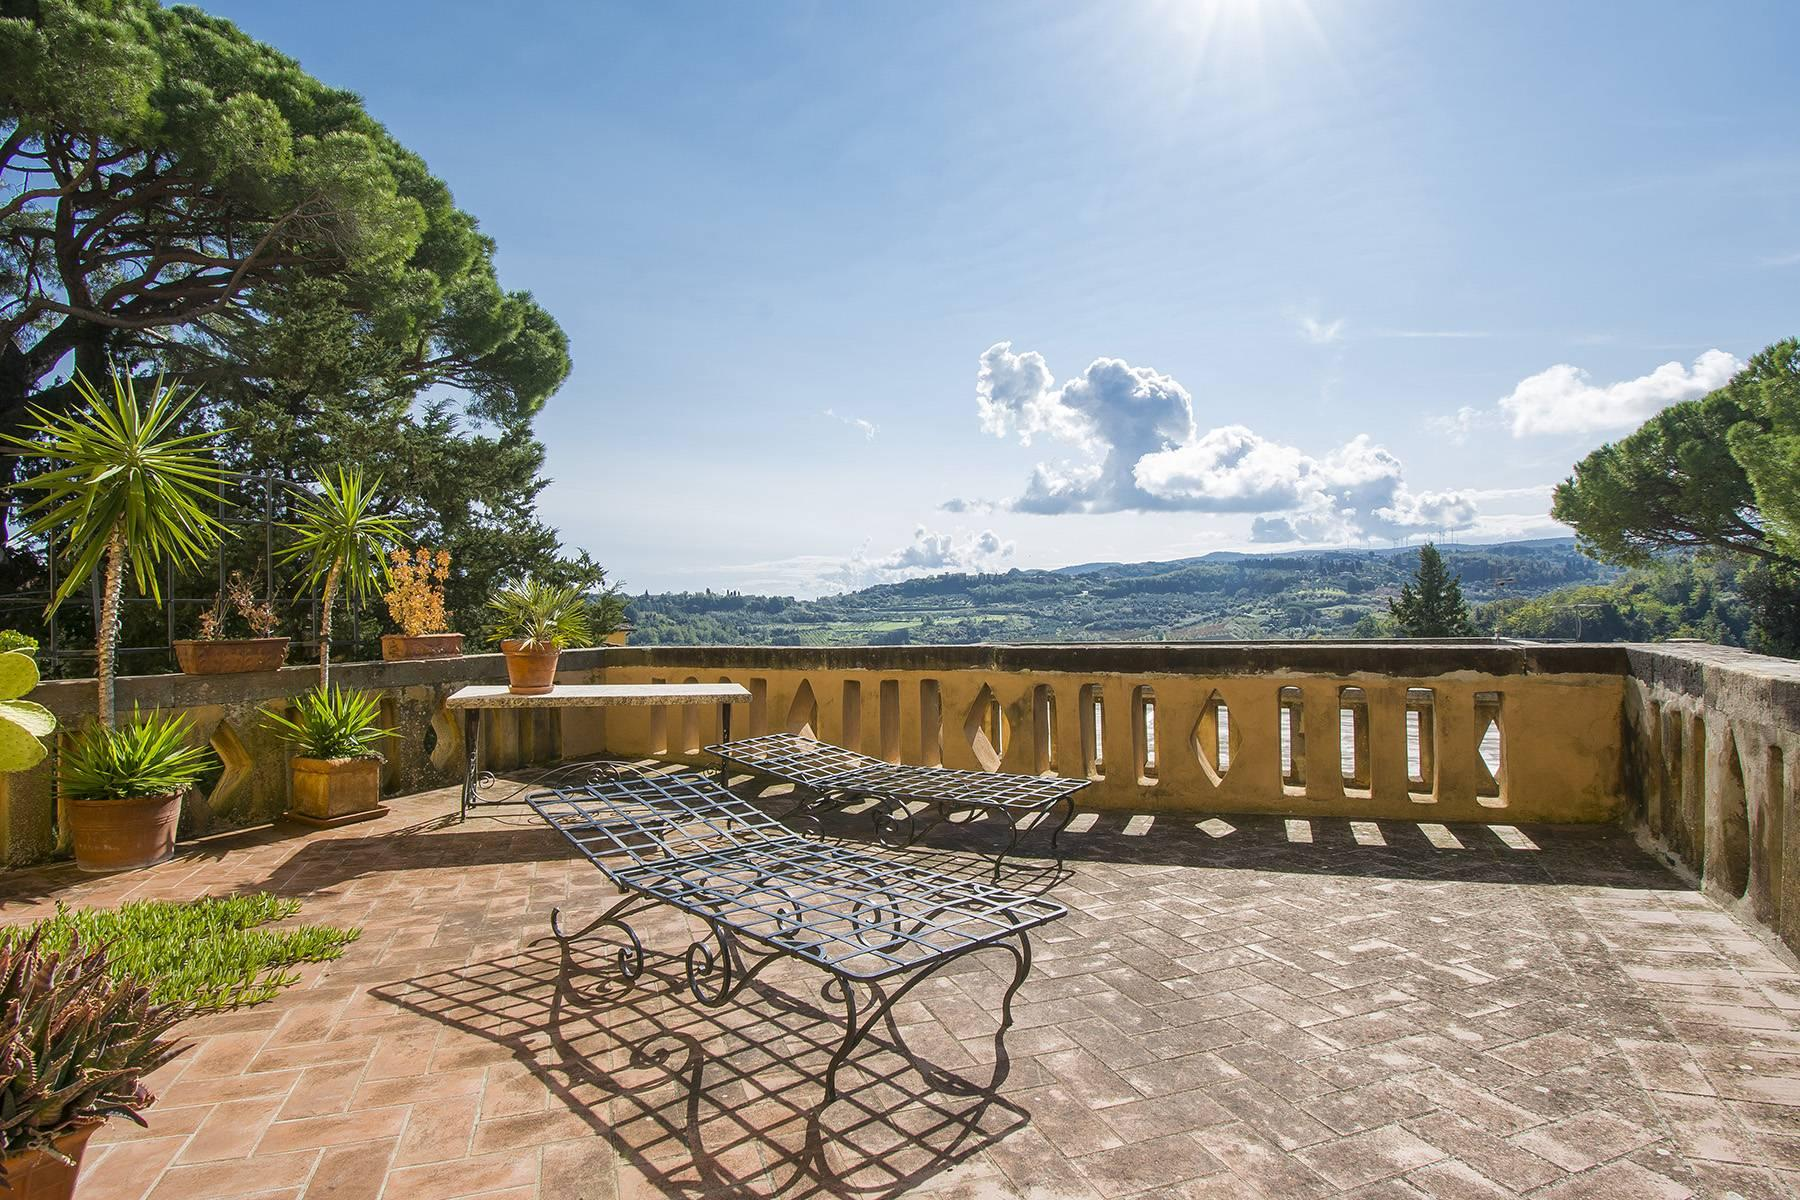 Charming Medicean Villa on the Tuscan hills - 3